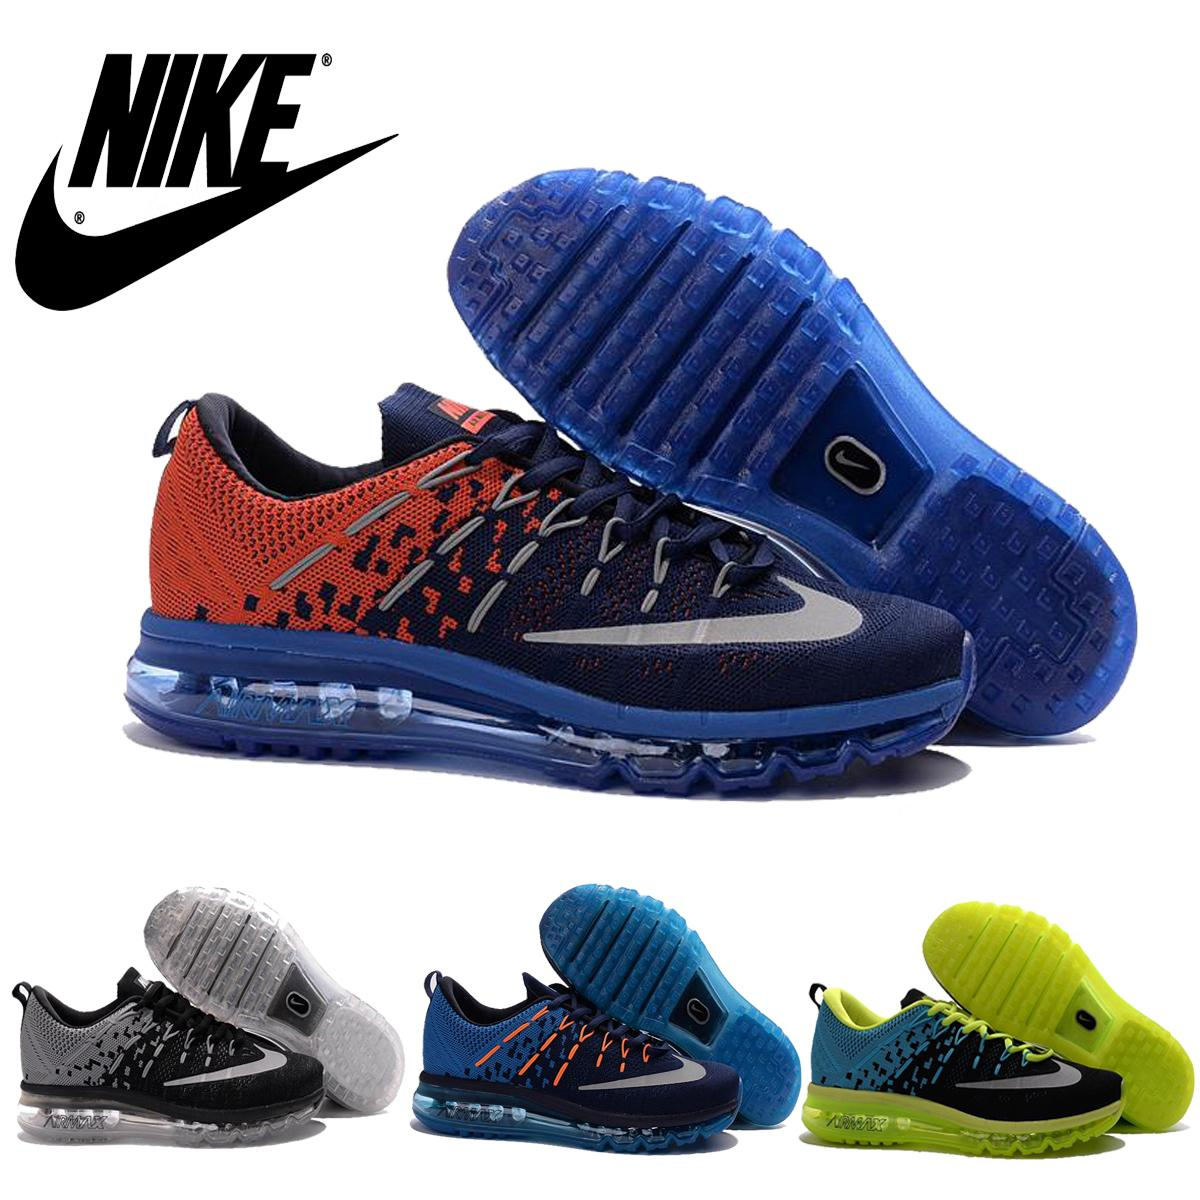 Cheap Nike News The Legend of Future Past: The Air Max 95 OG Cheap Nike, Inc.